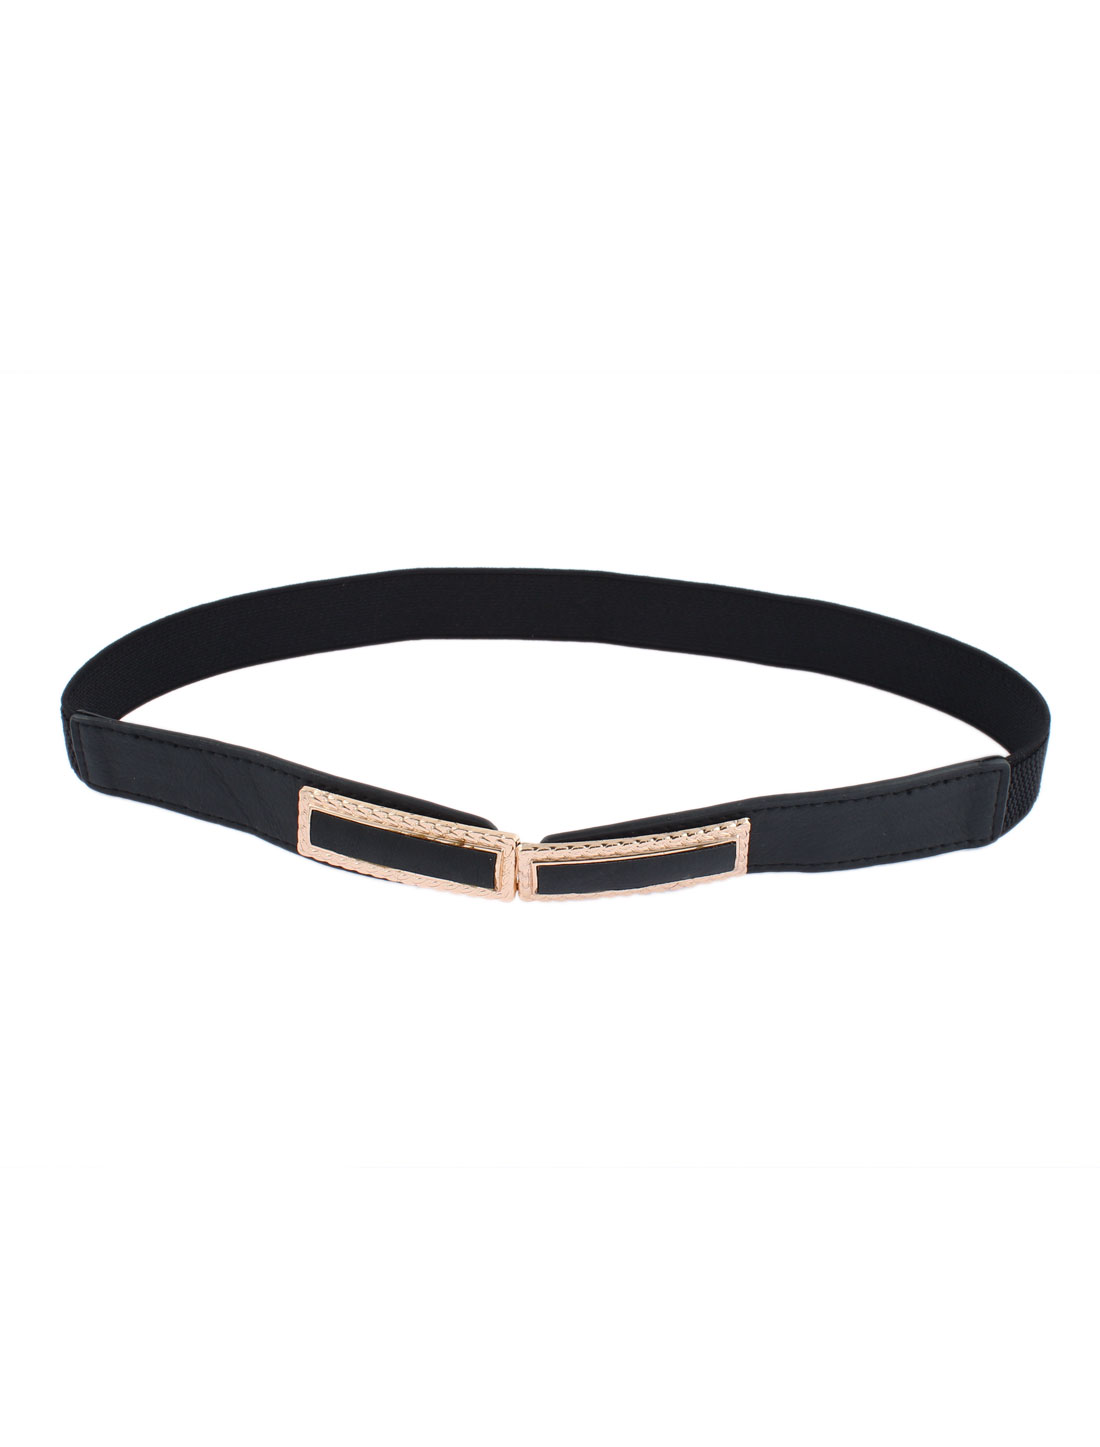 Interlocking Buckle Waist Belt Waistband 1 Inch Width Black for Women